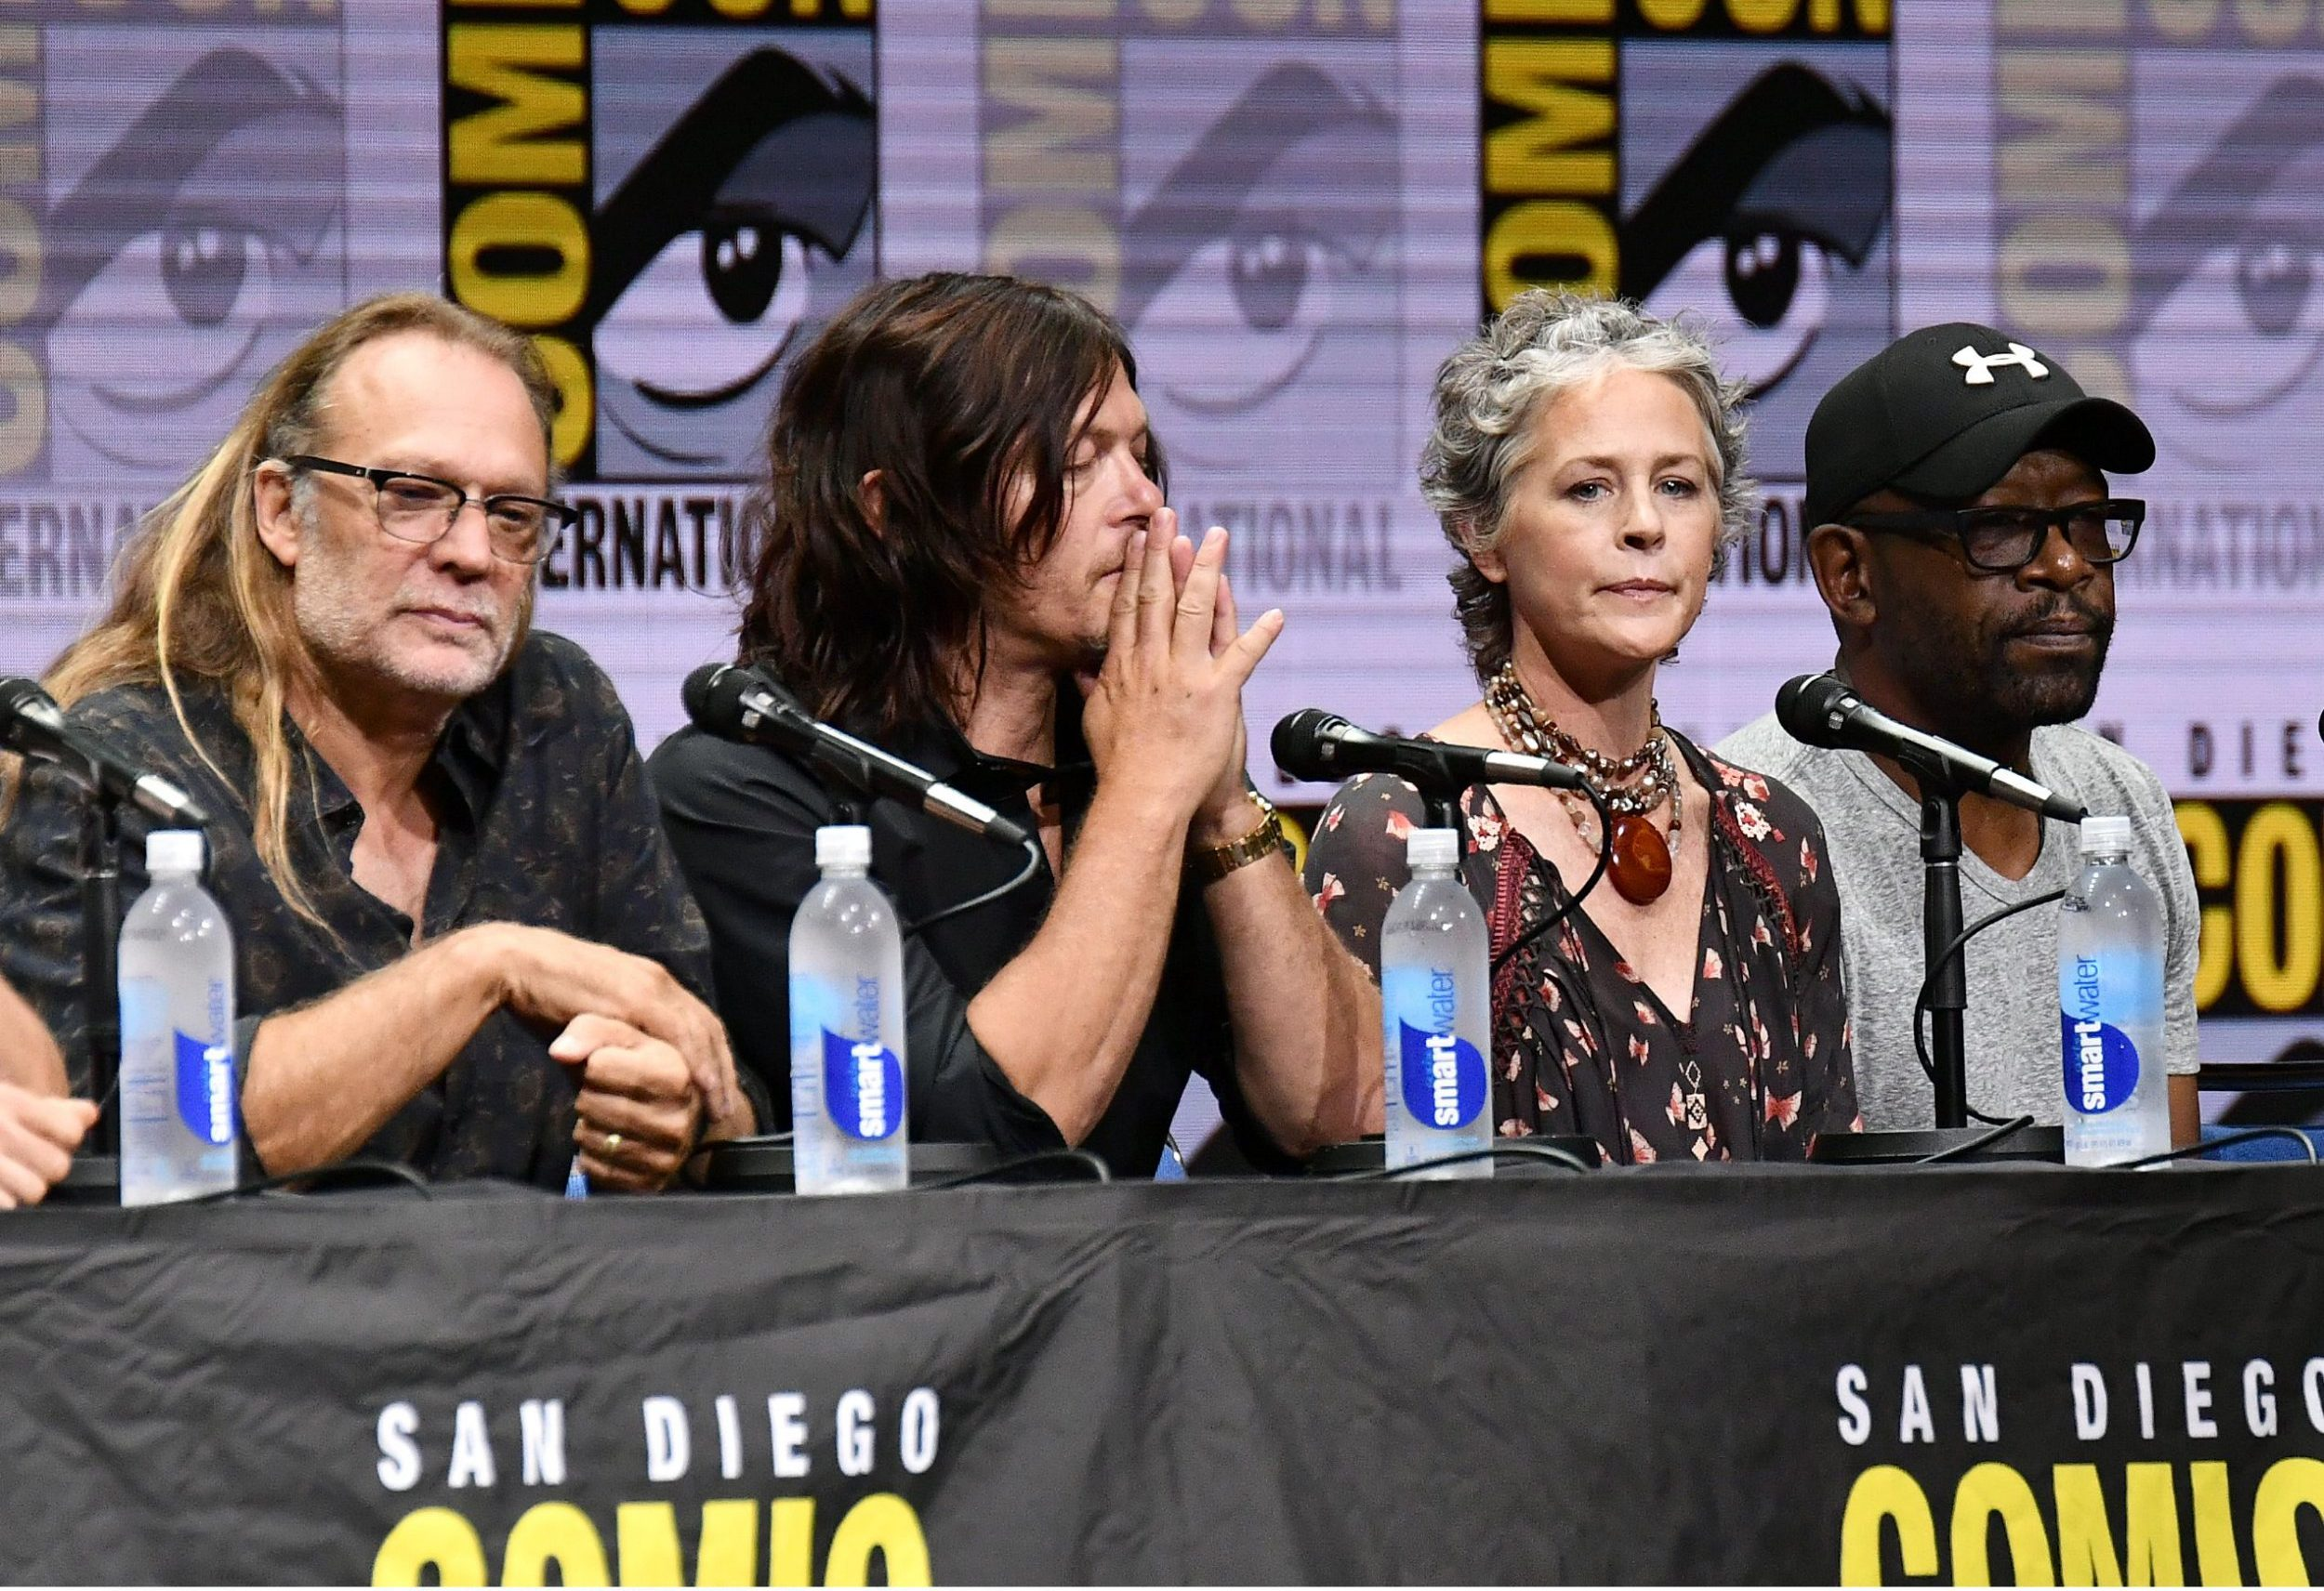 The Walking Dead showrunner pays tribute to stuntman John Bernecker at San Diego Comic-Con